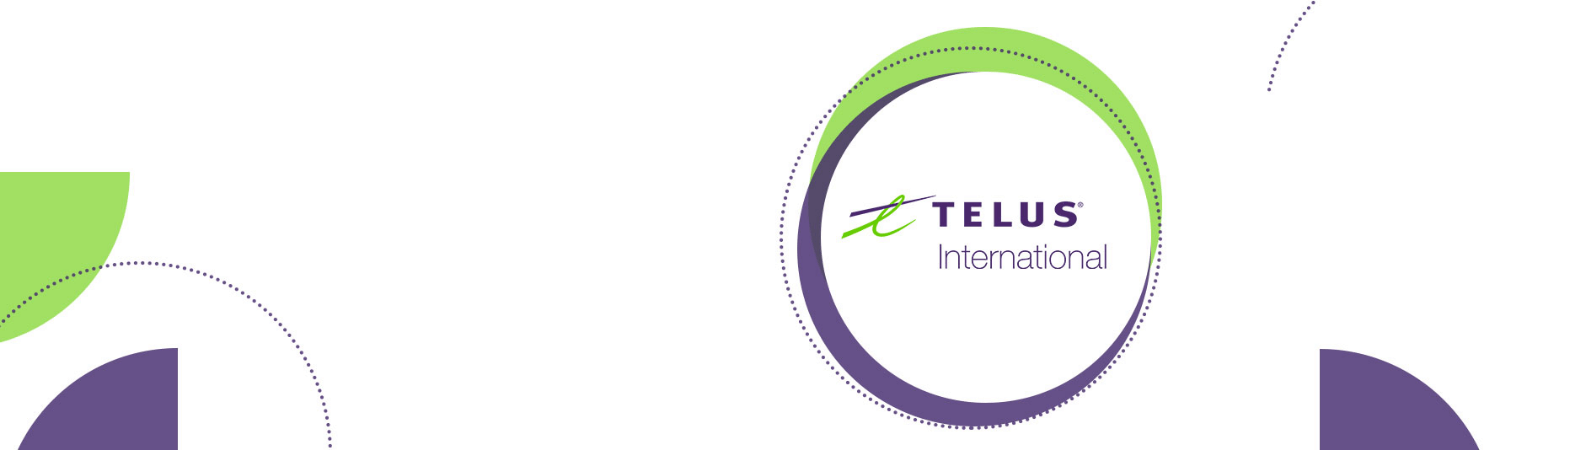 TELUS International Europe.